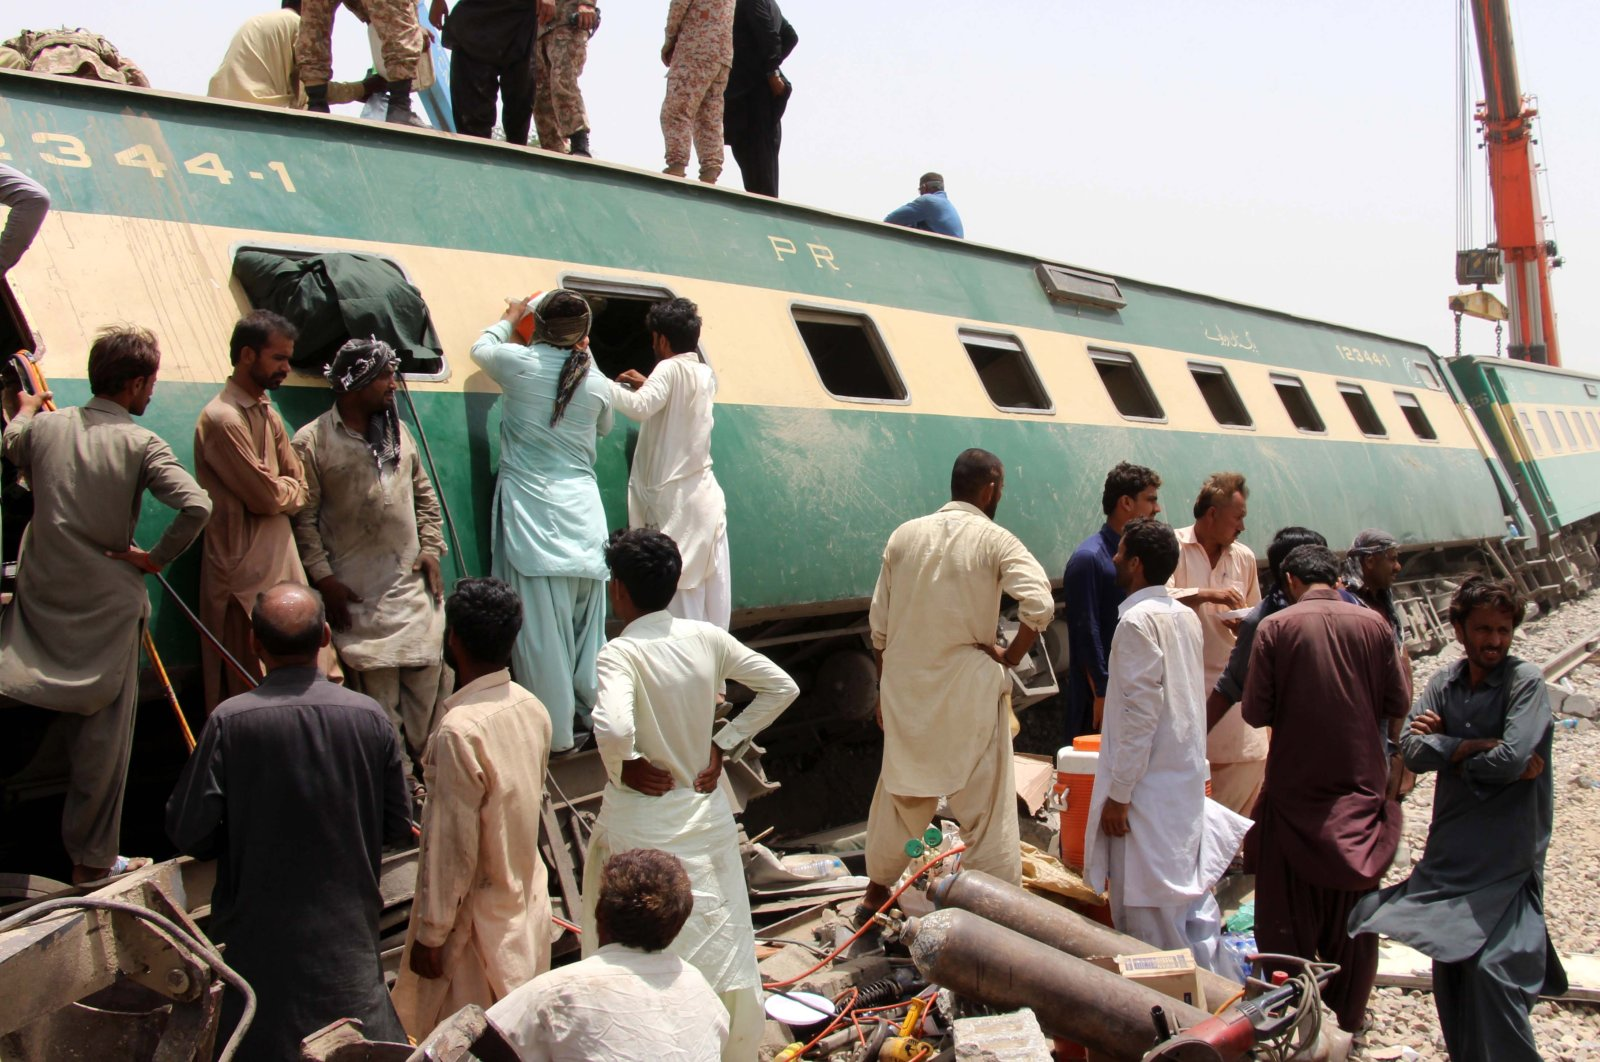 Rescue workers assess the scene following a train accident in Dharki, Sindh province, Pakistan, June 7, 2021. (EPA Photo)